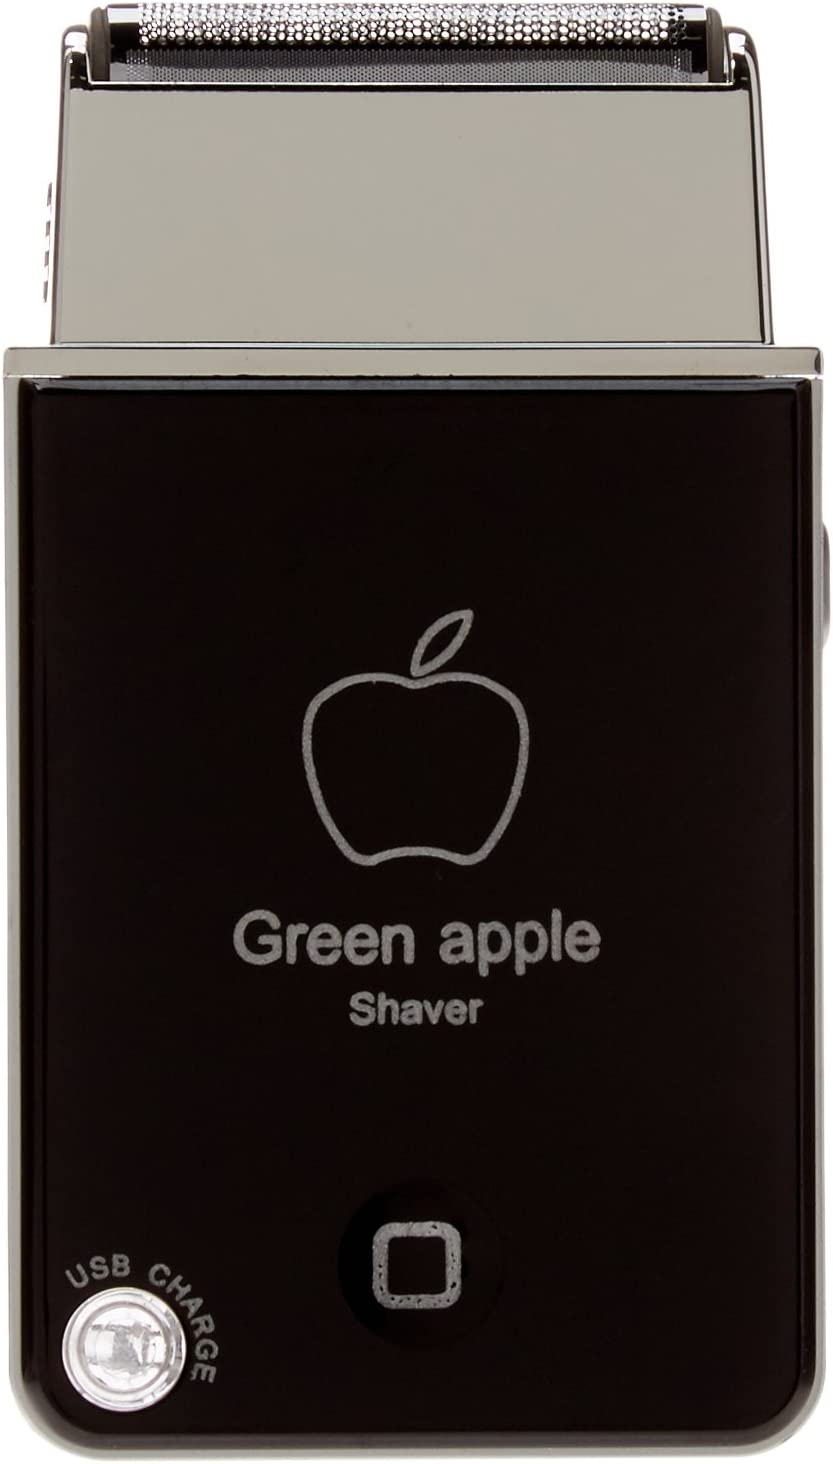 Green Apple Shaver Rscw-1880 Shavetech USB Rechargeable Travel Razor (Black)